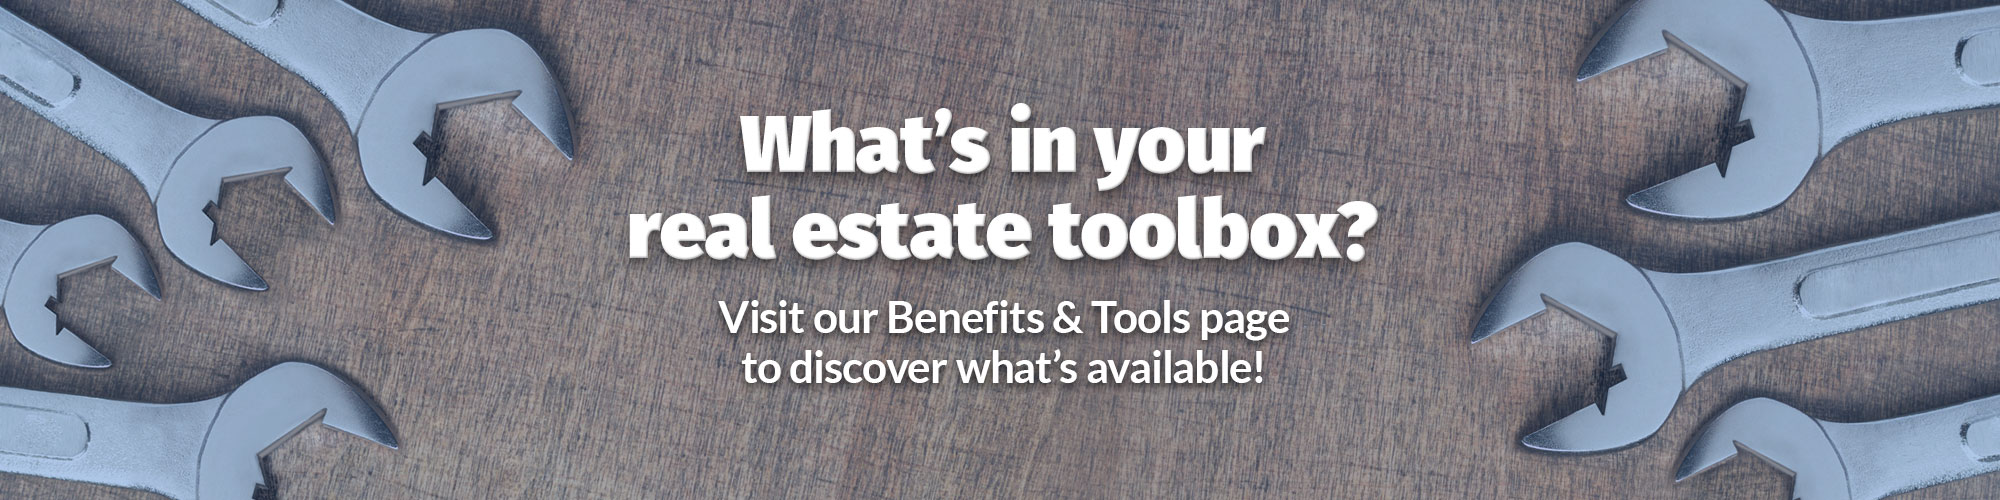 Visit our Tools & Benefits page